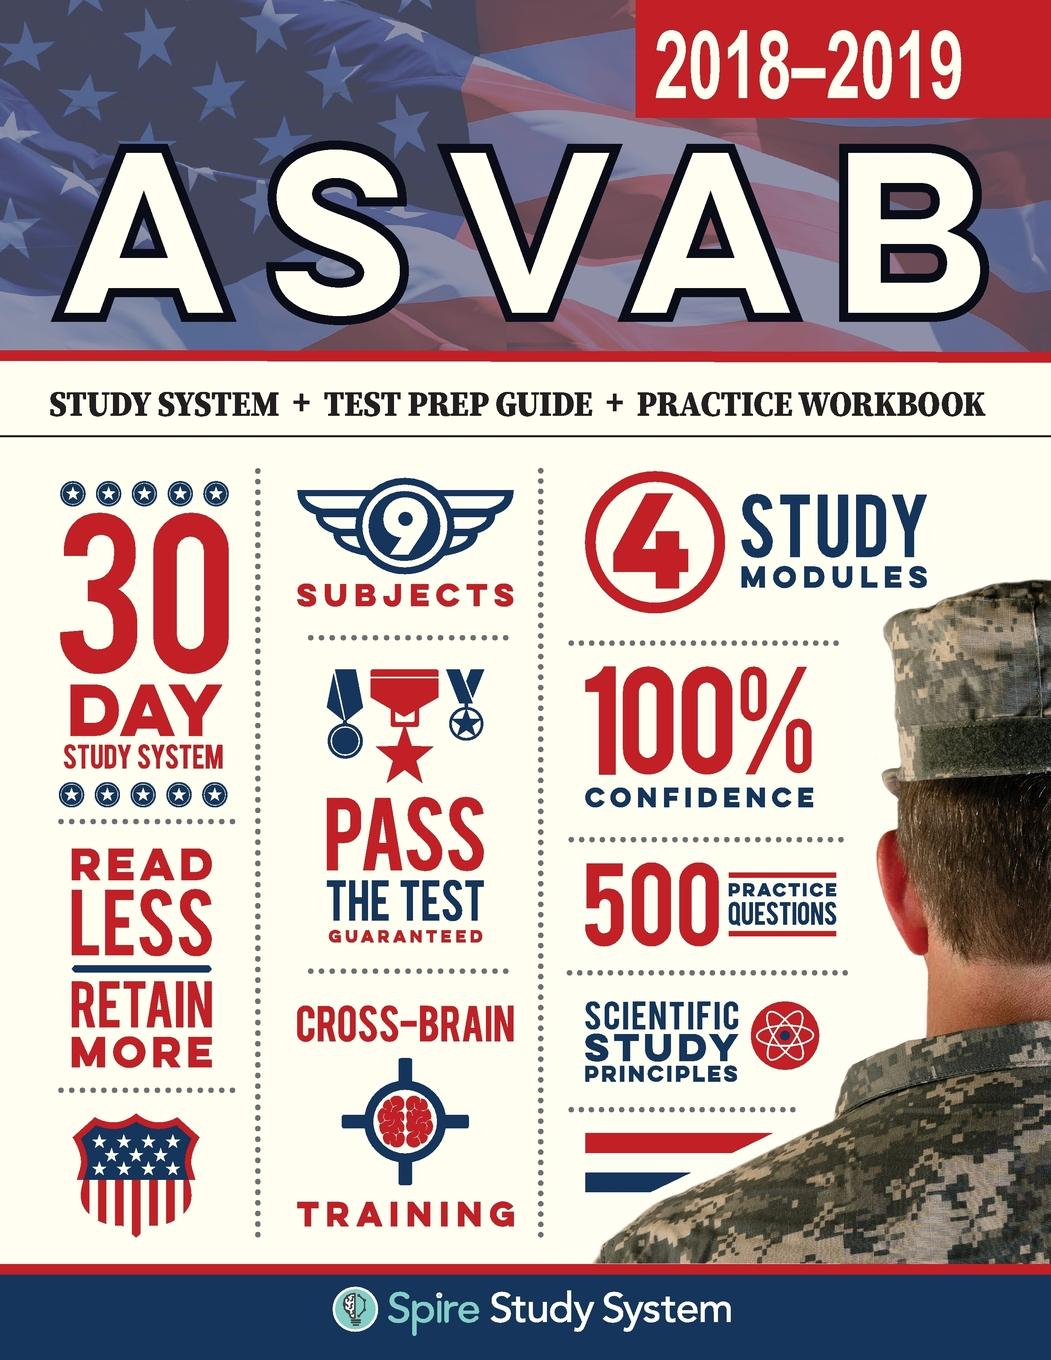 asvab general science study guide The armed services vocational aptitude battery (asvab) is a required test for anyone interested in entering into the military the test may also be used for other purposes since it indicates general aptitude our step by step study guide will show you exactly how to pass the asvab.